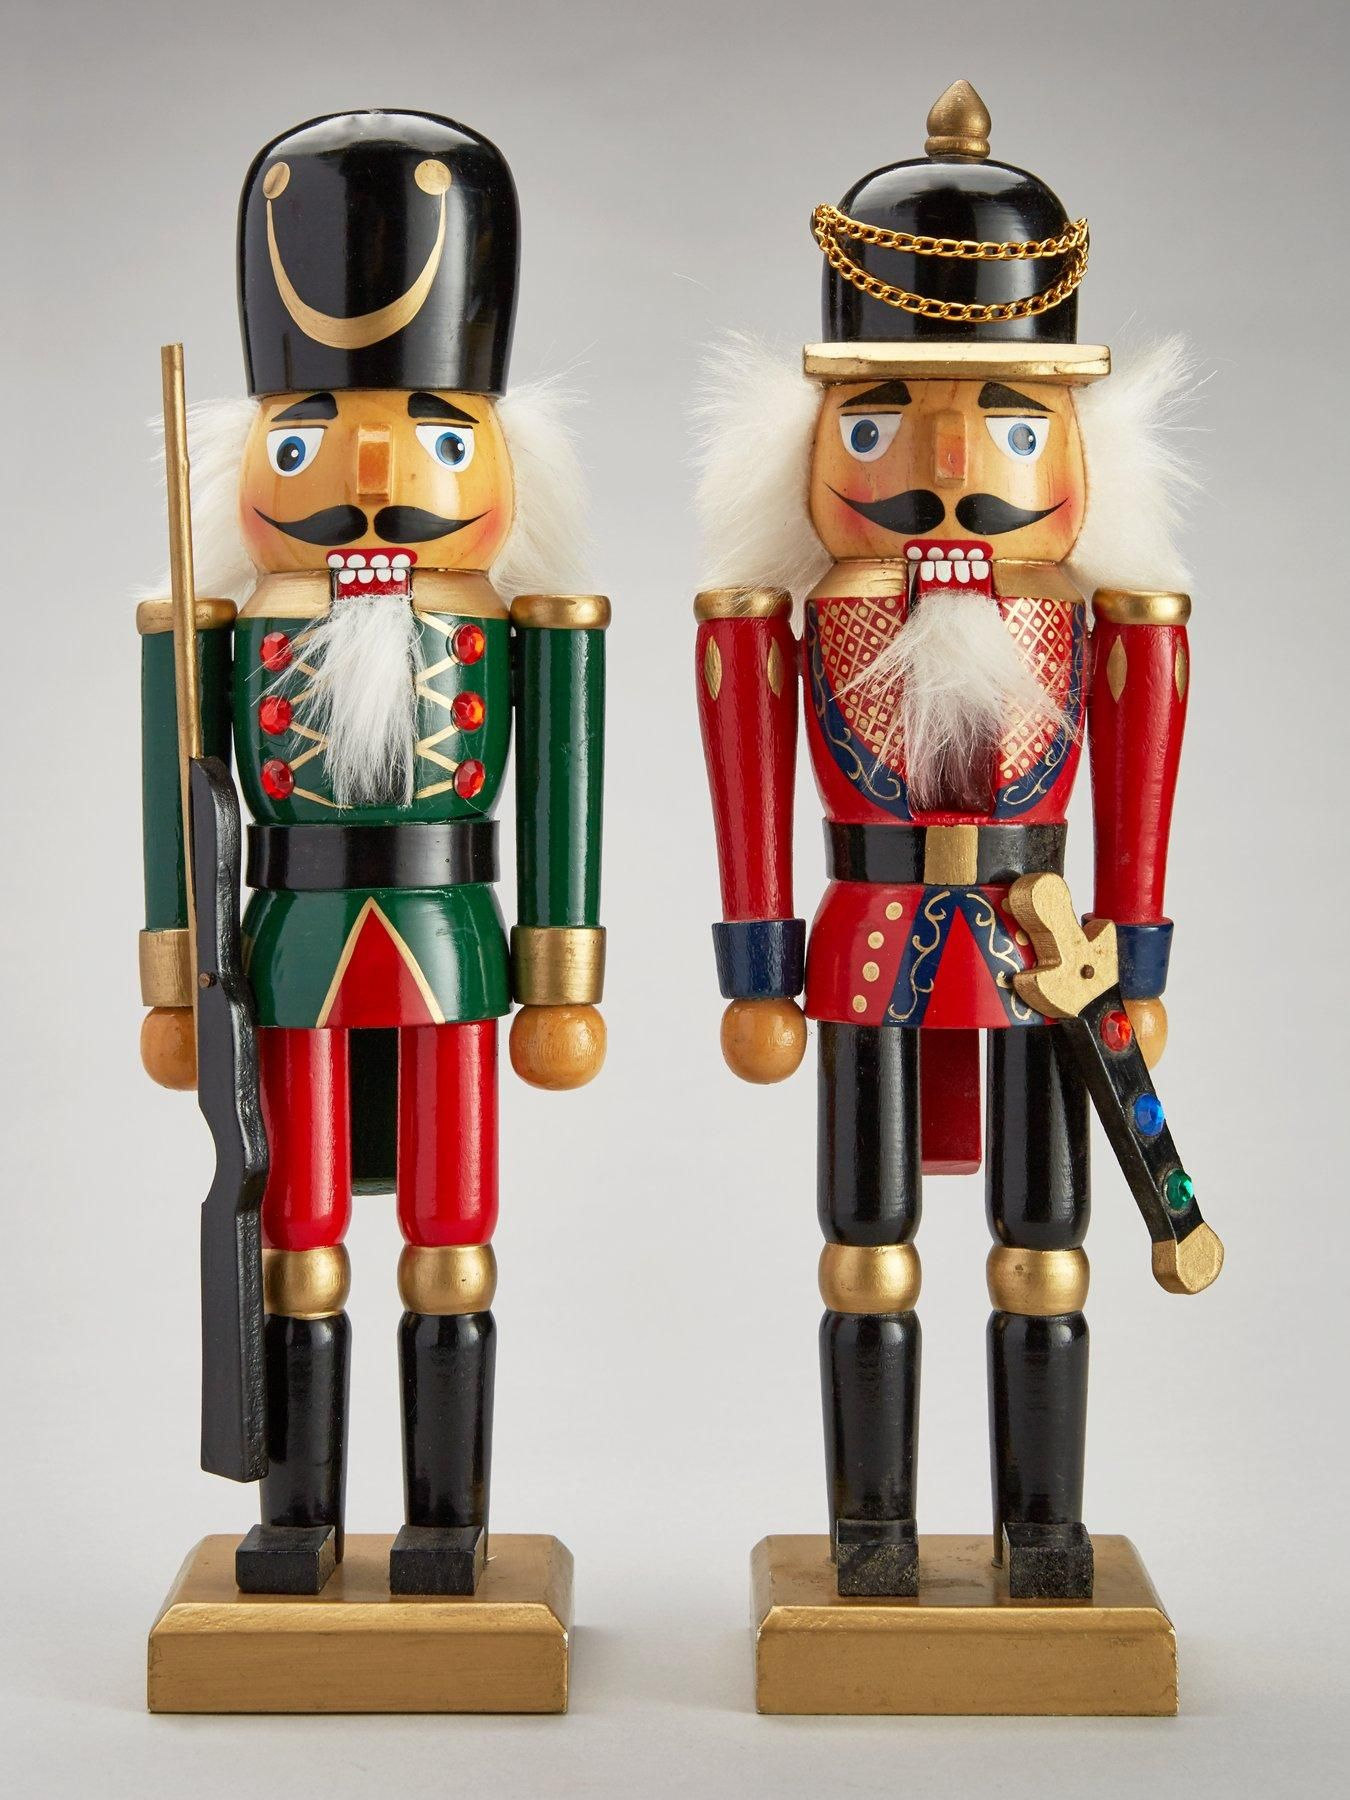 Wooden Nutcracker Soldiers Christmas Decorations (2 Pack) - Verycouk